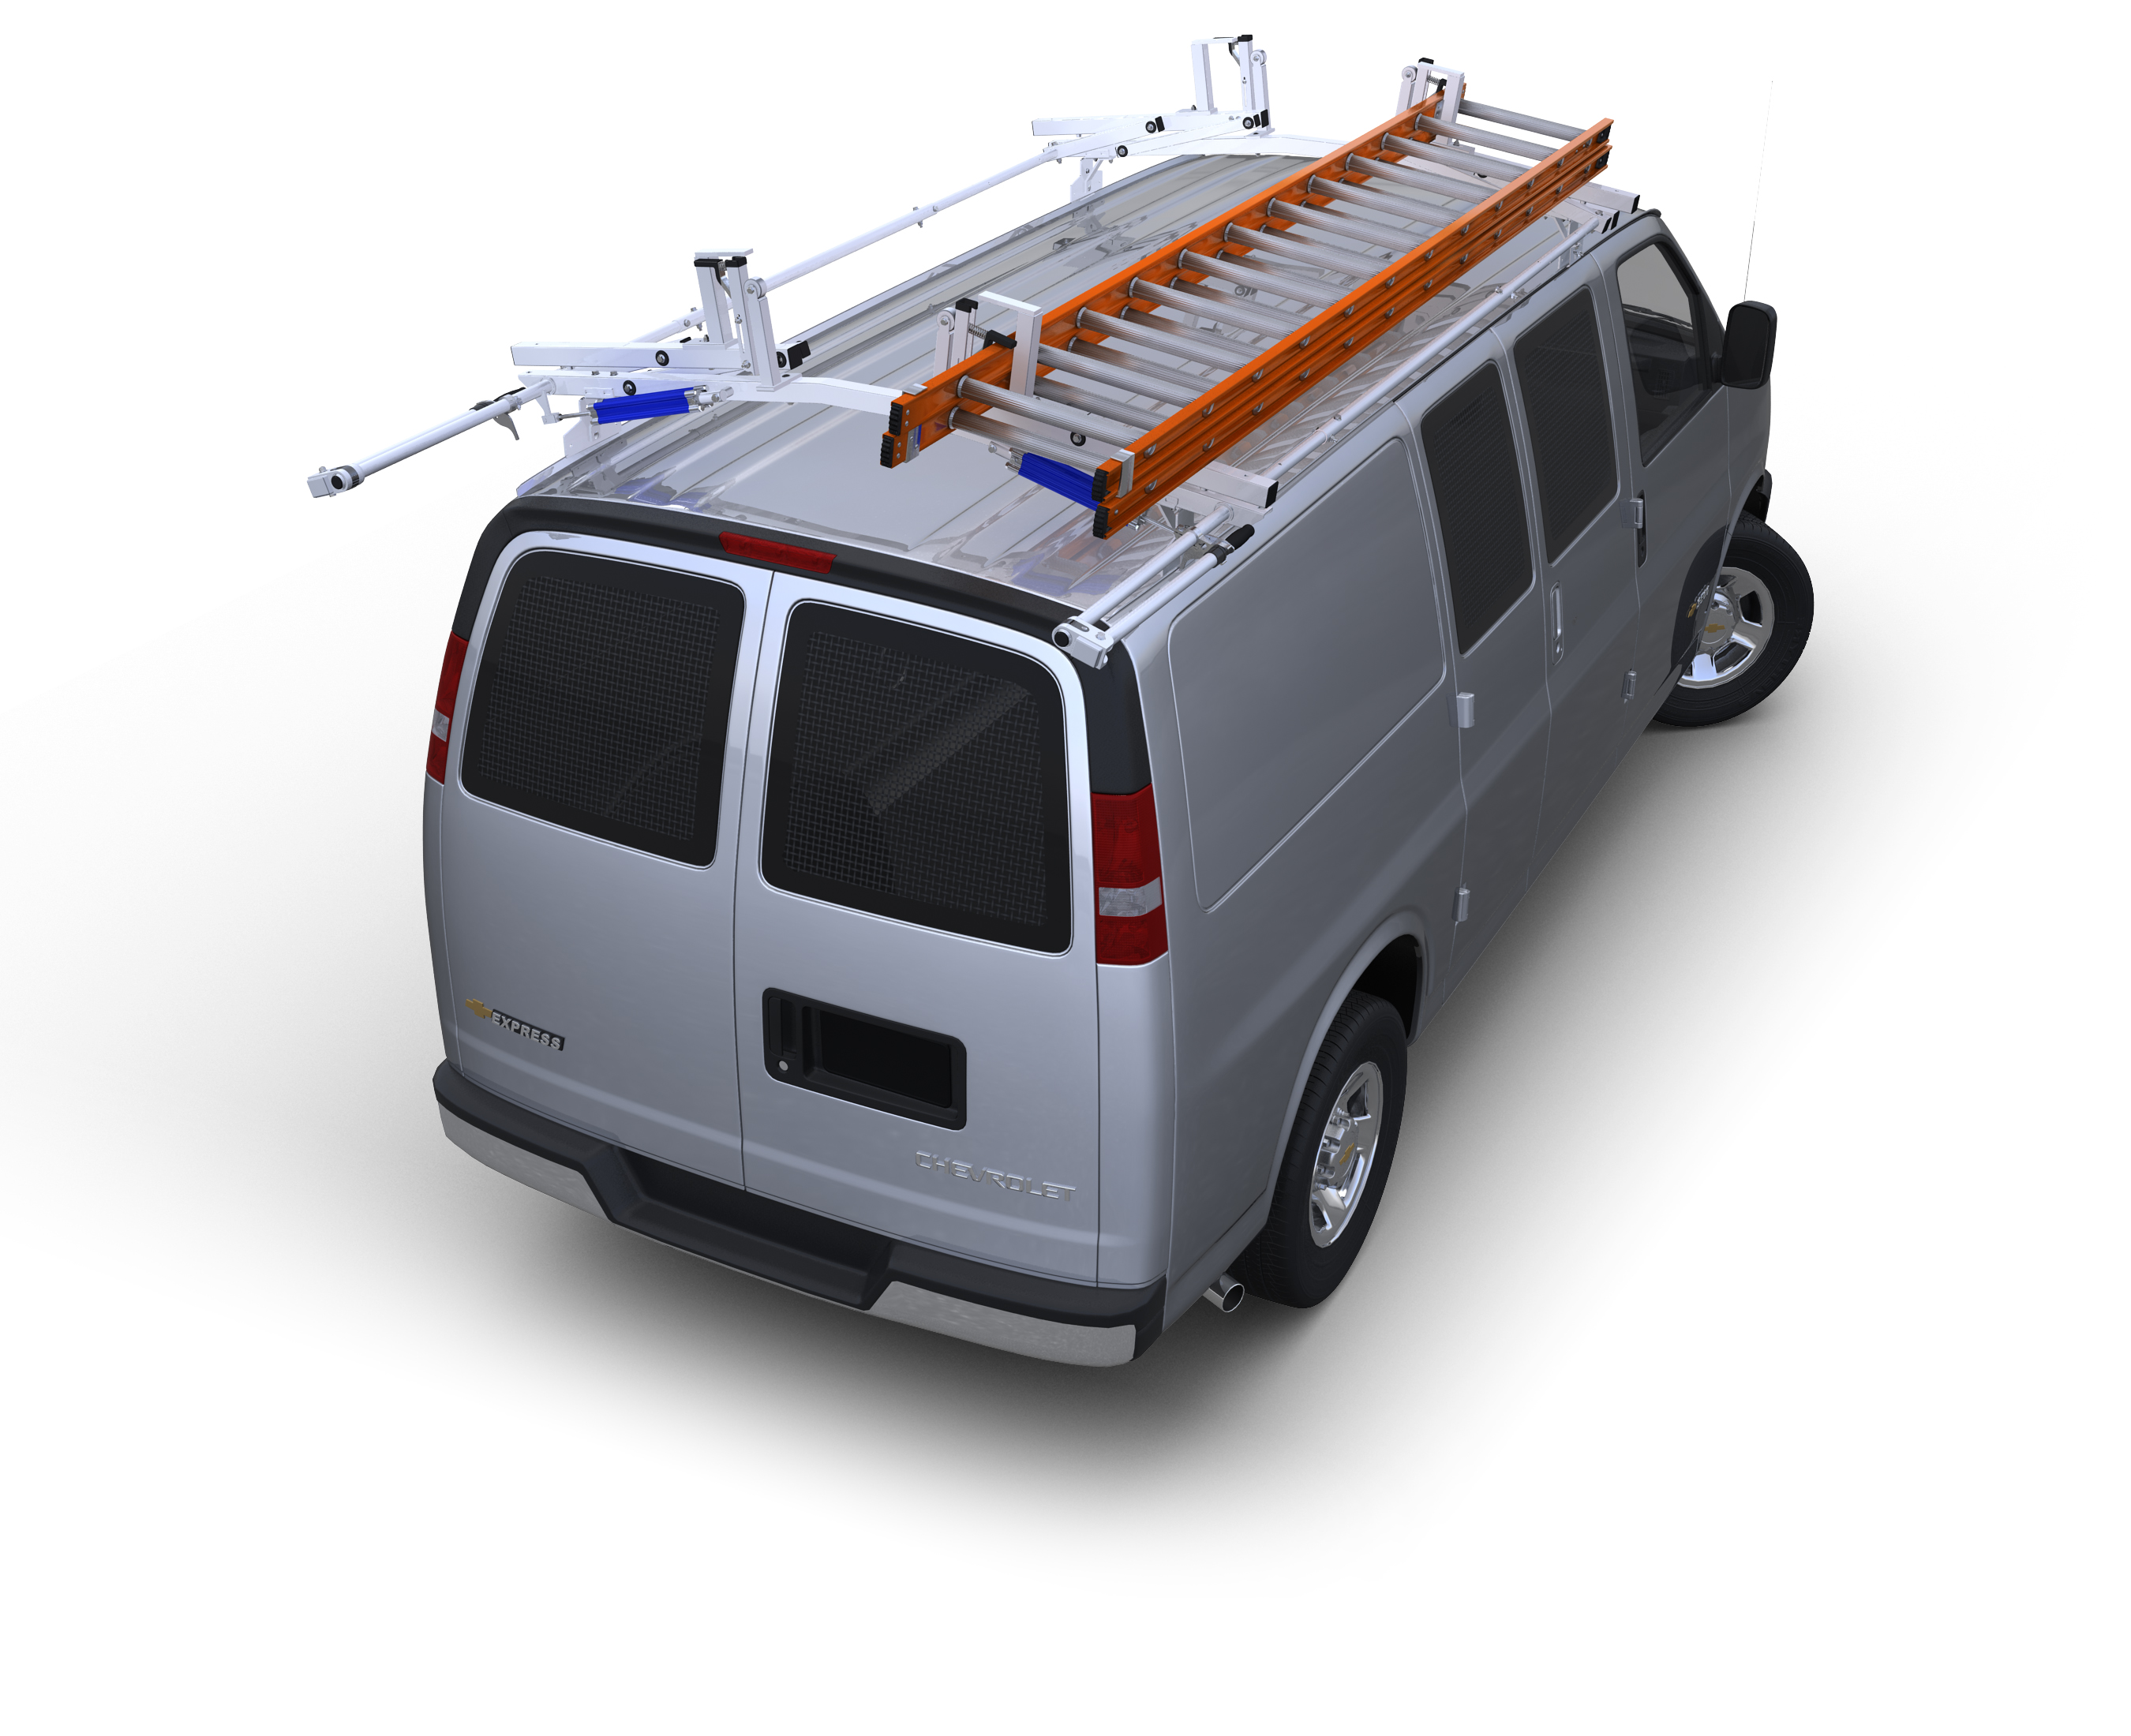 System One Utility Body Rack for 11' Standard or Extended Cab